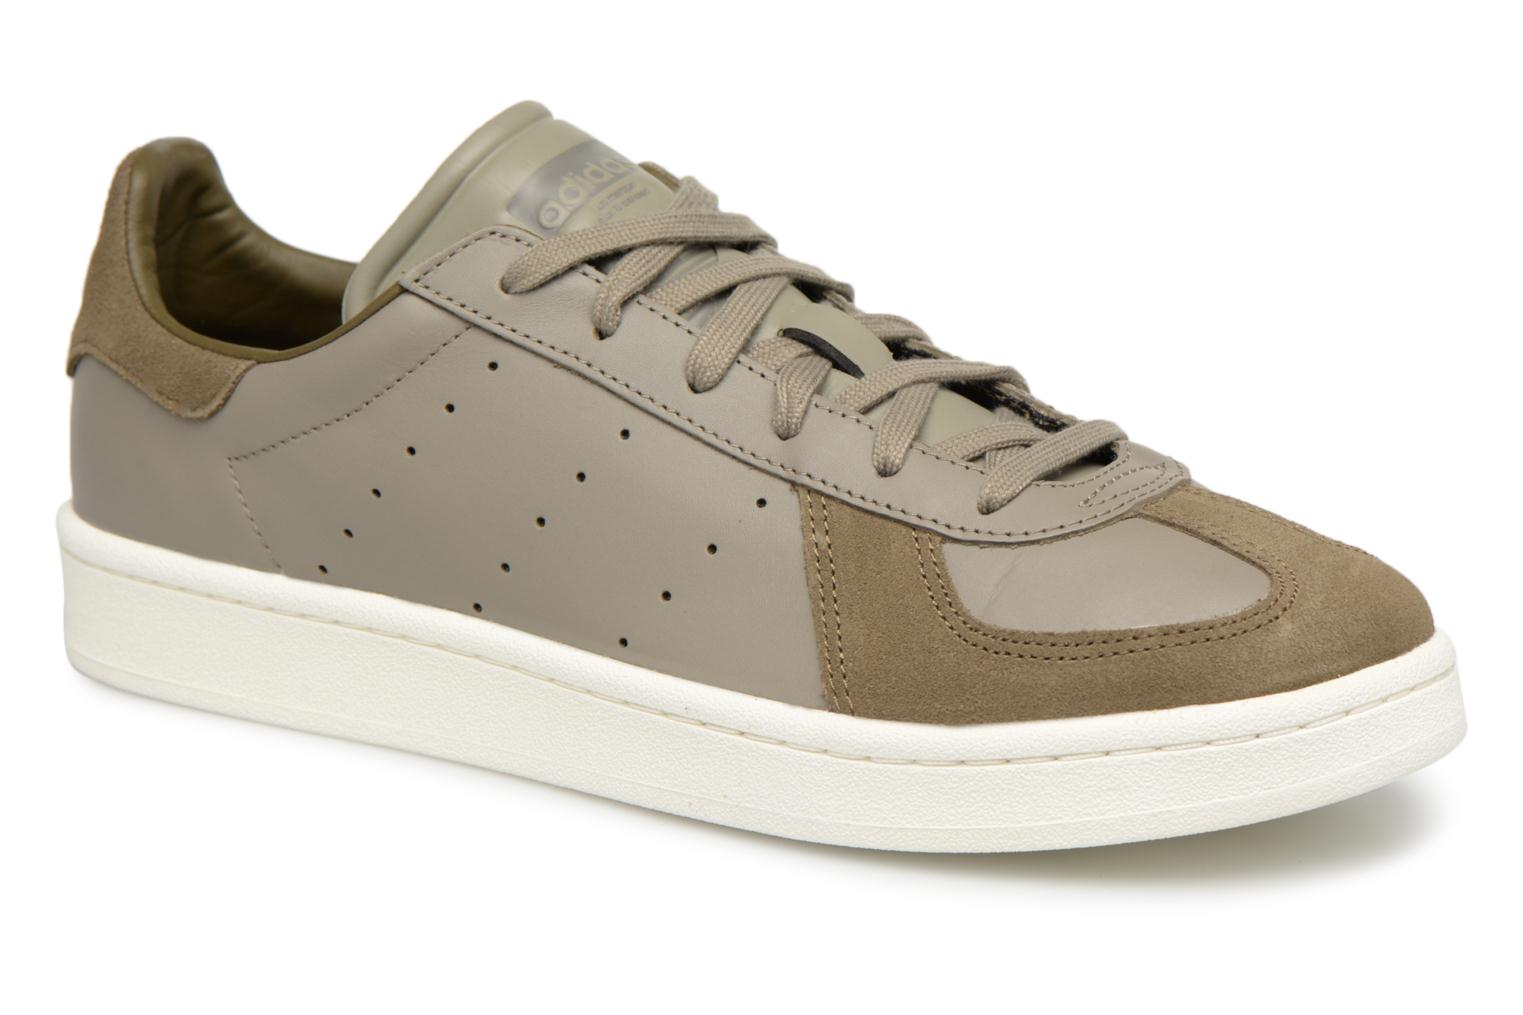 Marques Chaussure homme Adidas Originals homme BW Avenue CARTRA/CARTRA/OLITRA